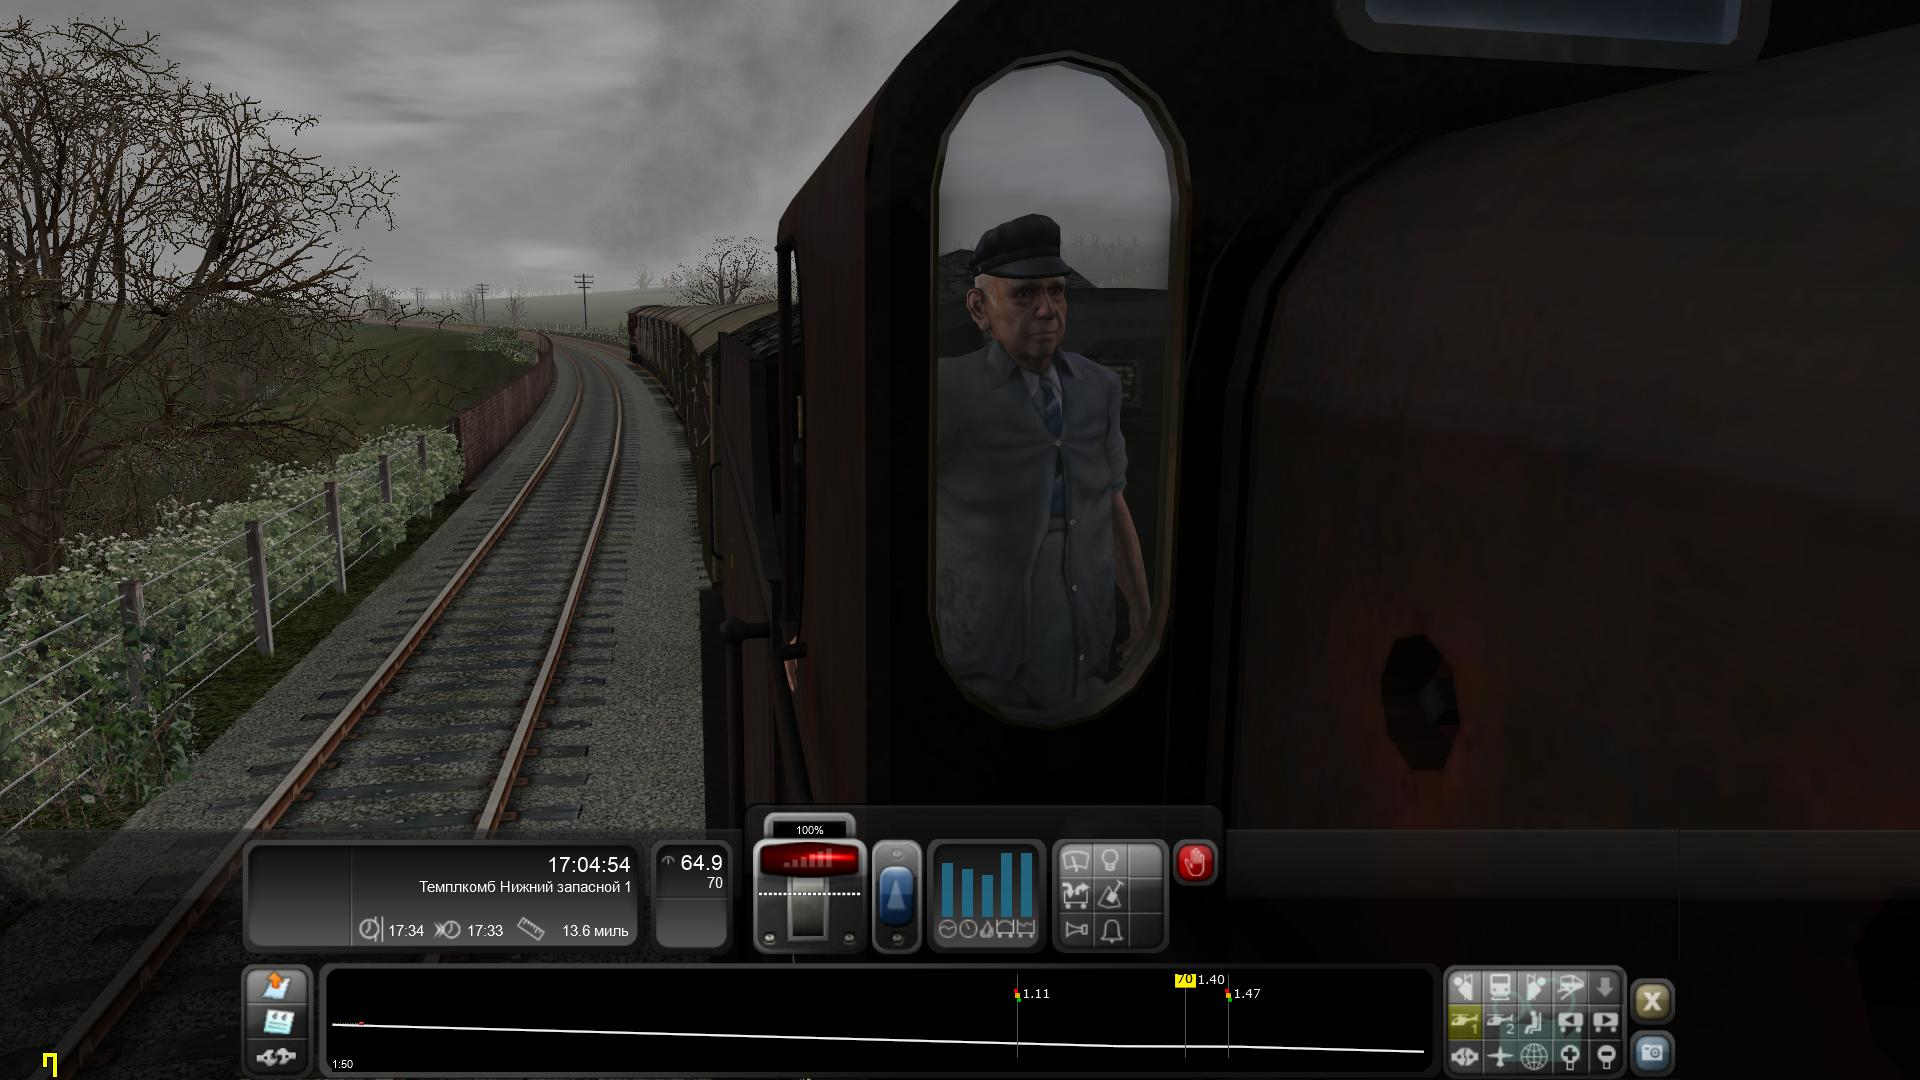 http://screenshot.ru/upload/images/2018/03/09/RailWorksProc22018-03-0919-48-50-807b4fc.jpg